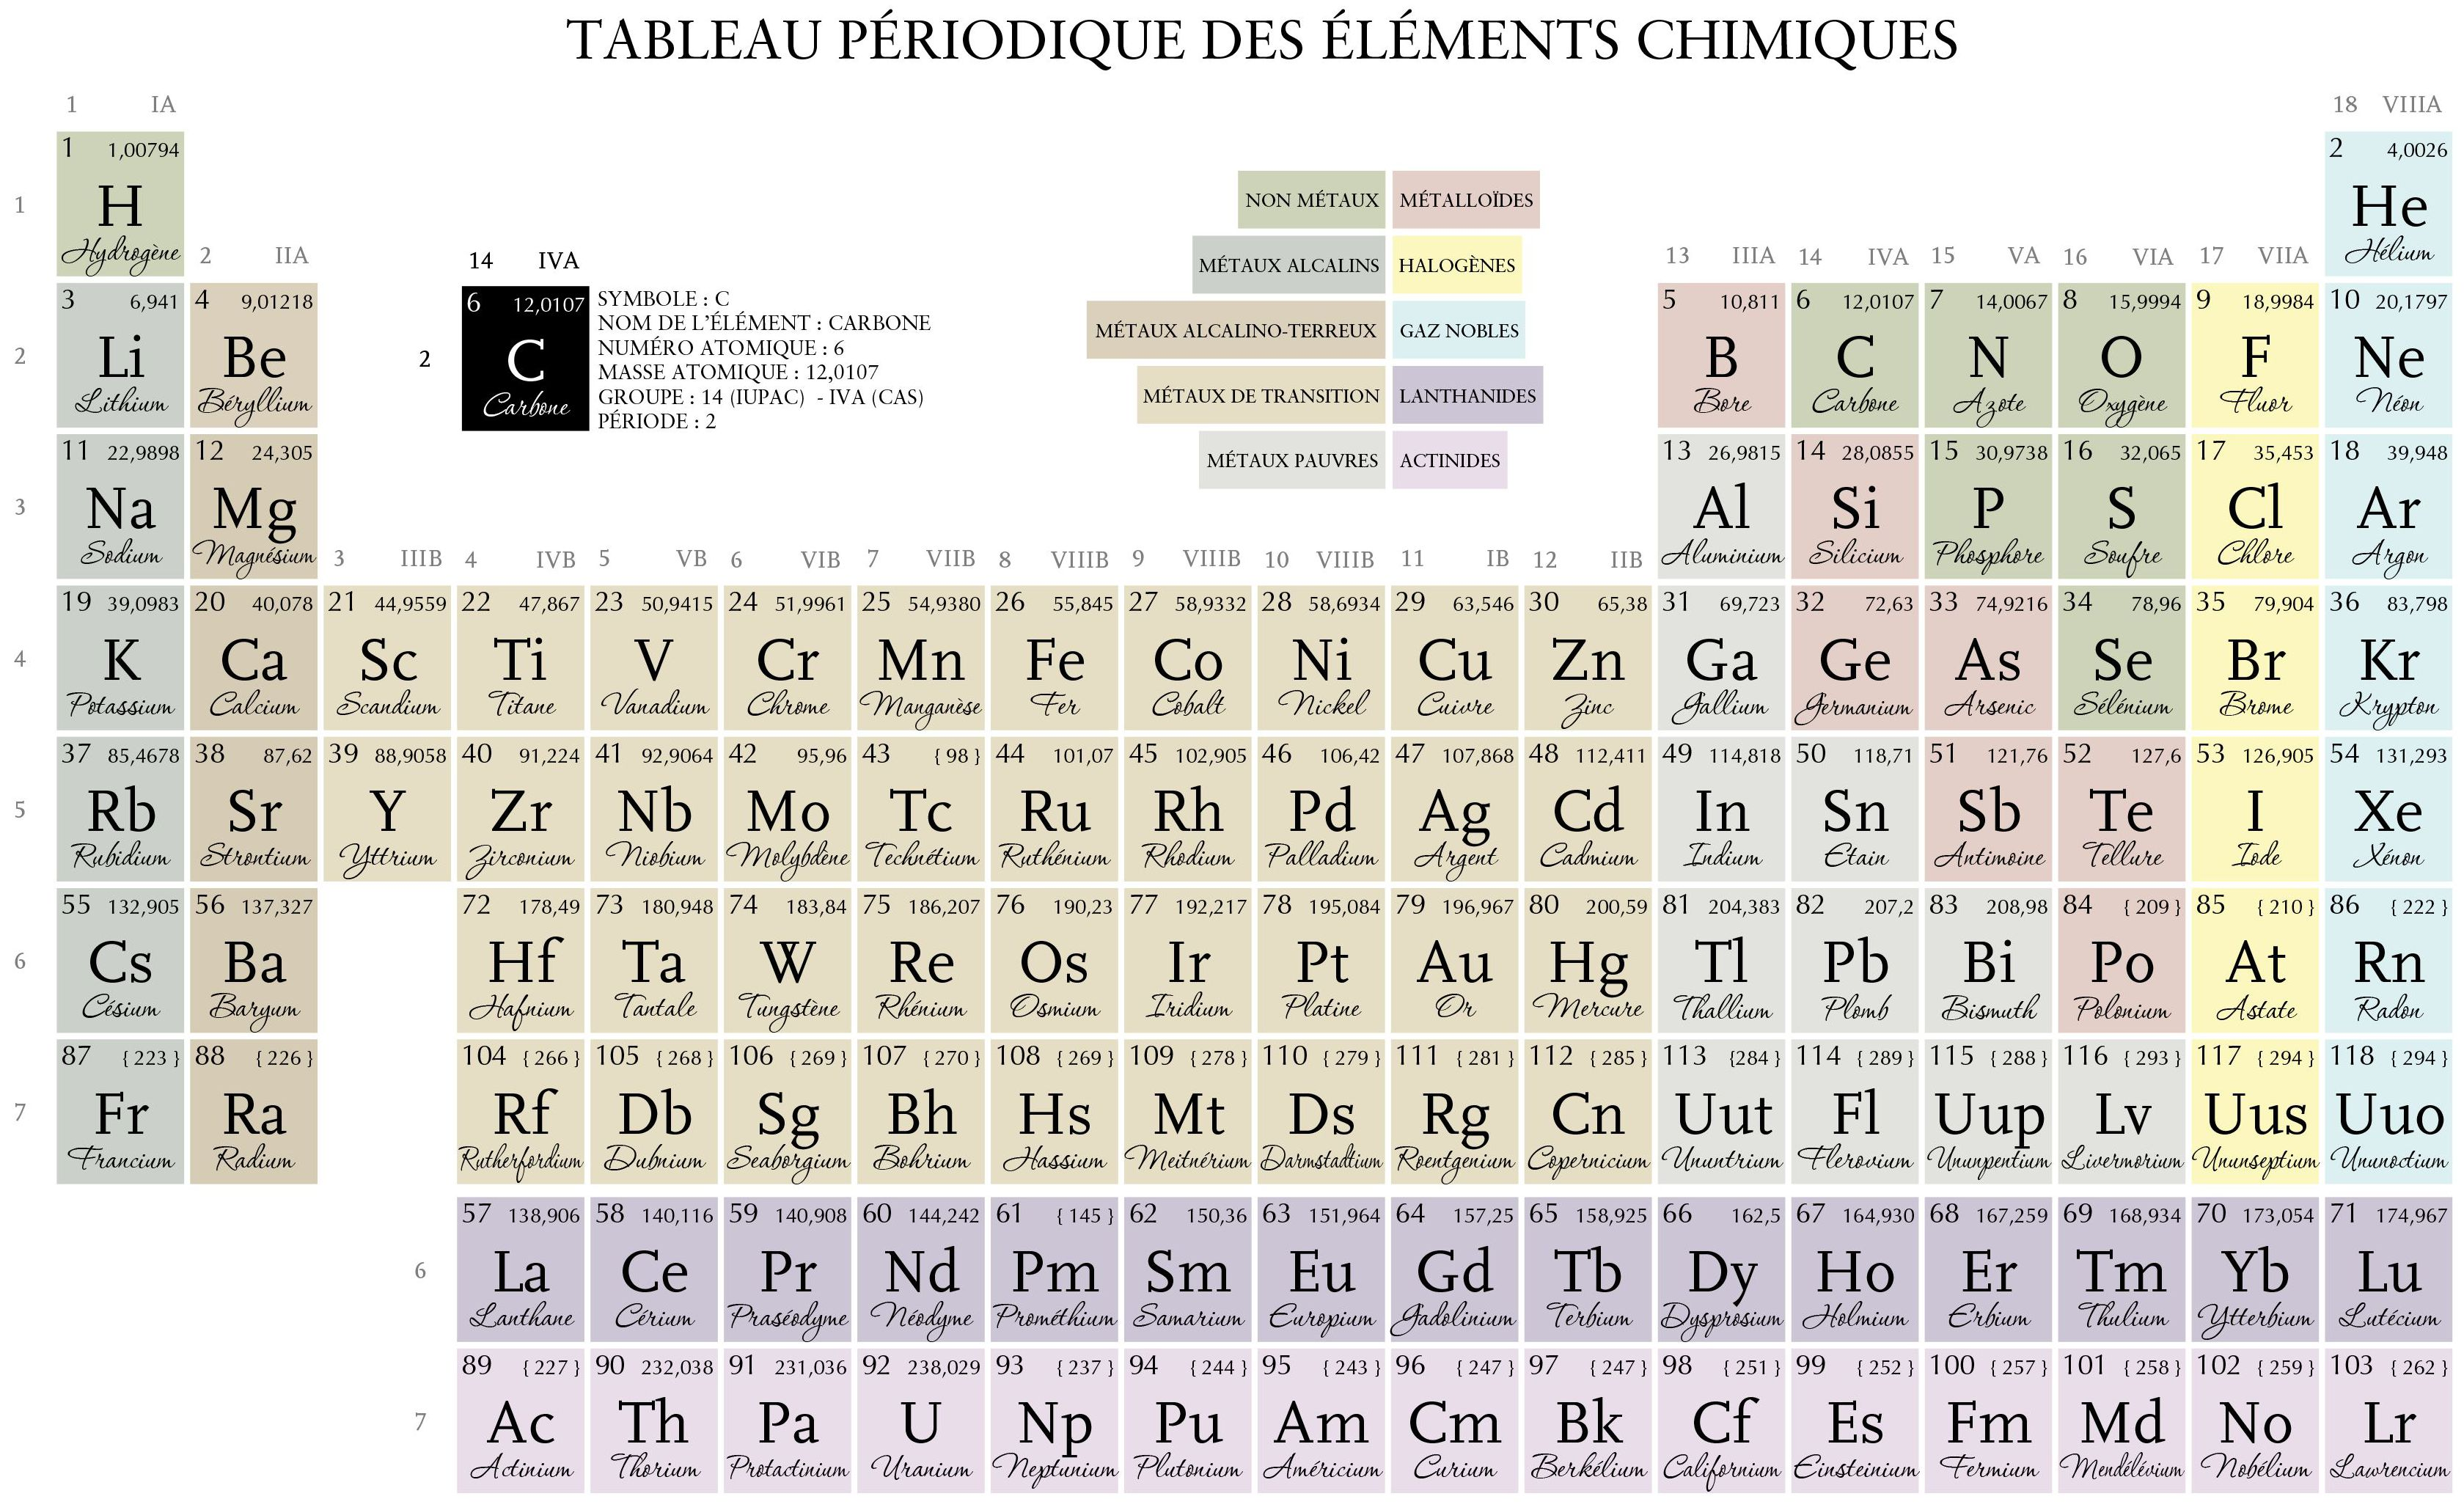 Tableau periodique related keywords for Tableau periodique